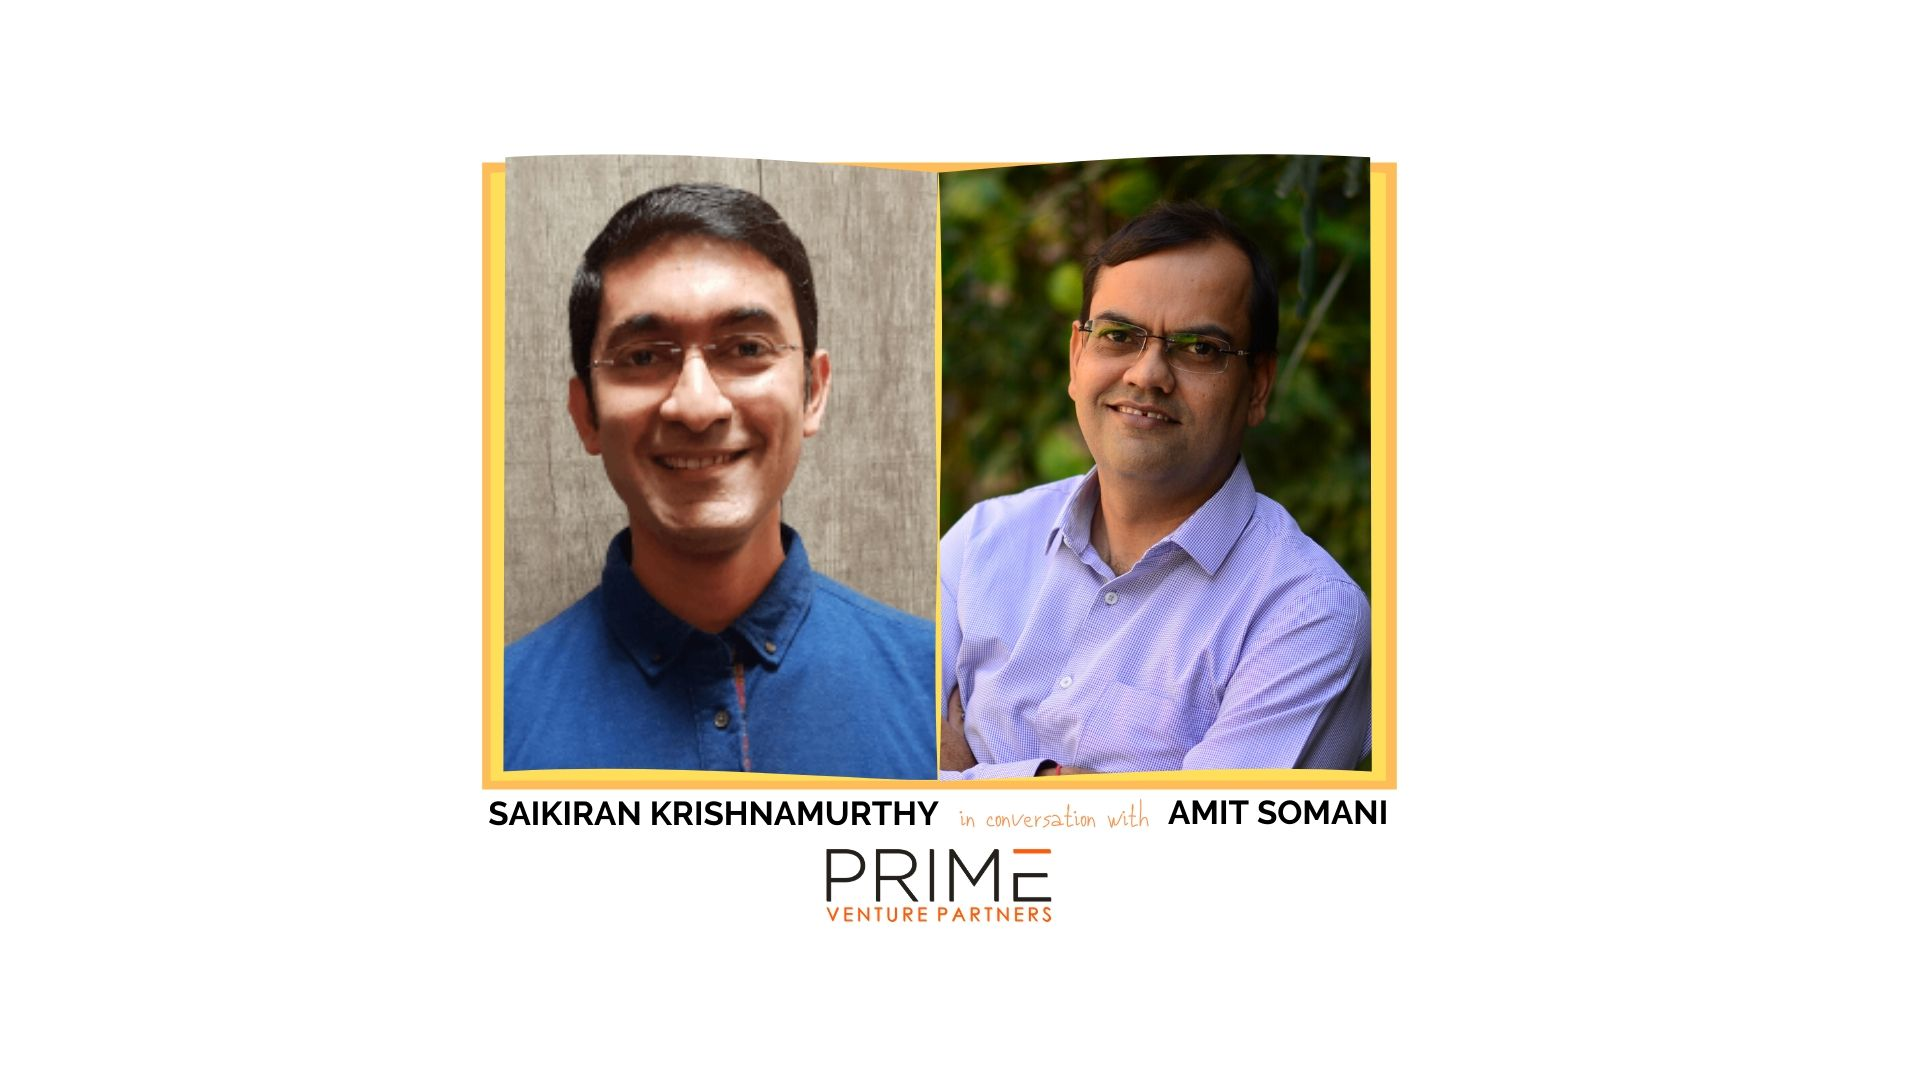 A graphic with guest(Saikiran Krishnamurthy) and host's (Amit Somani) name and image.